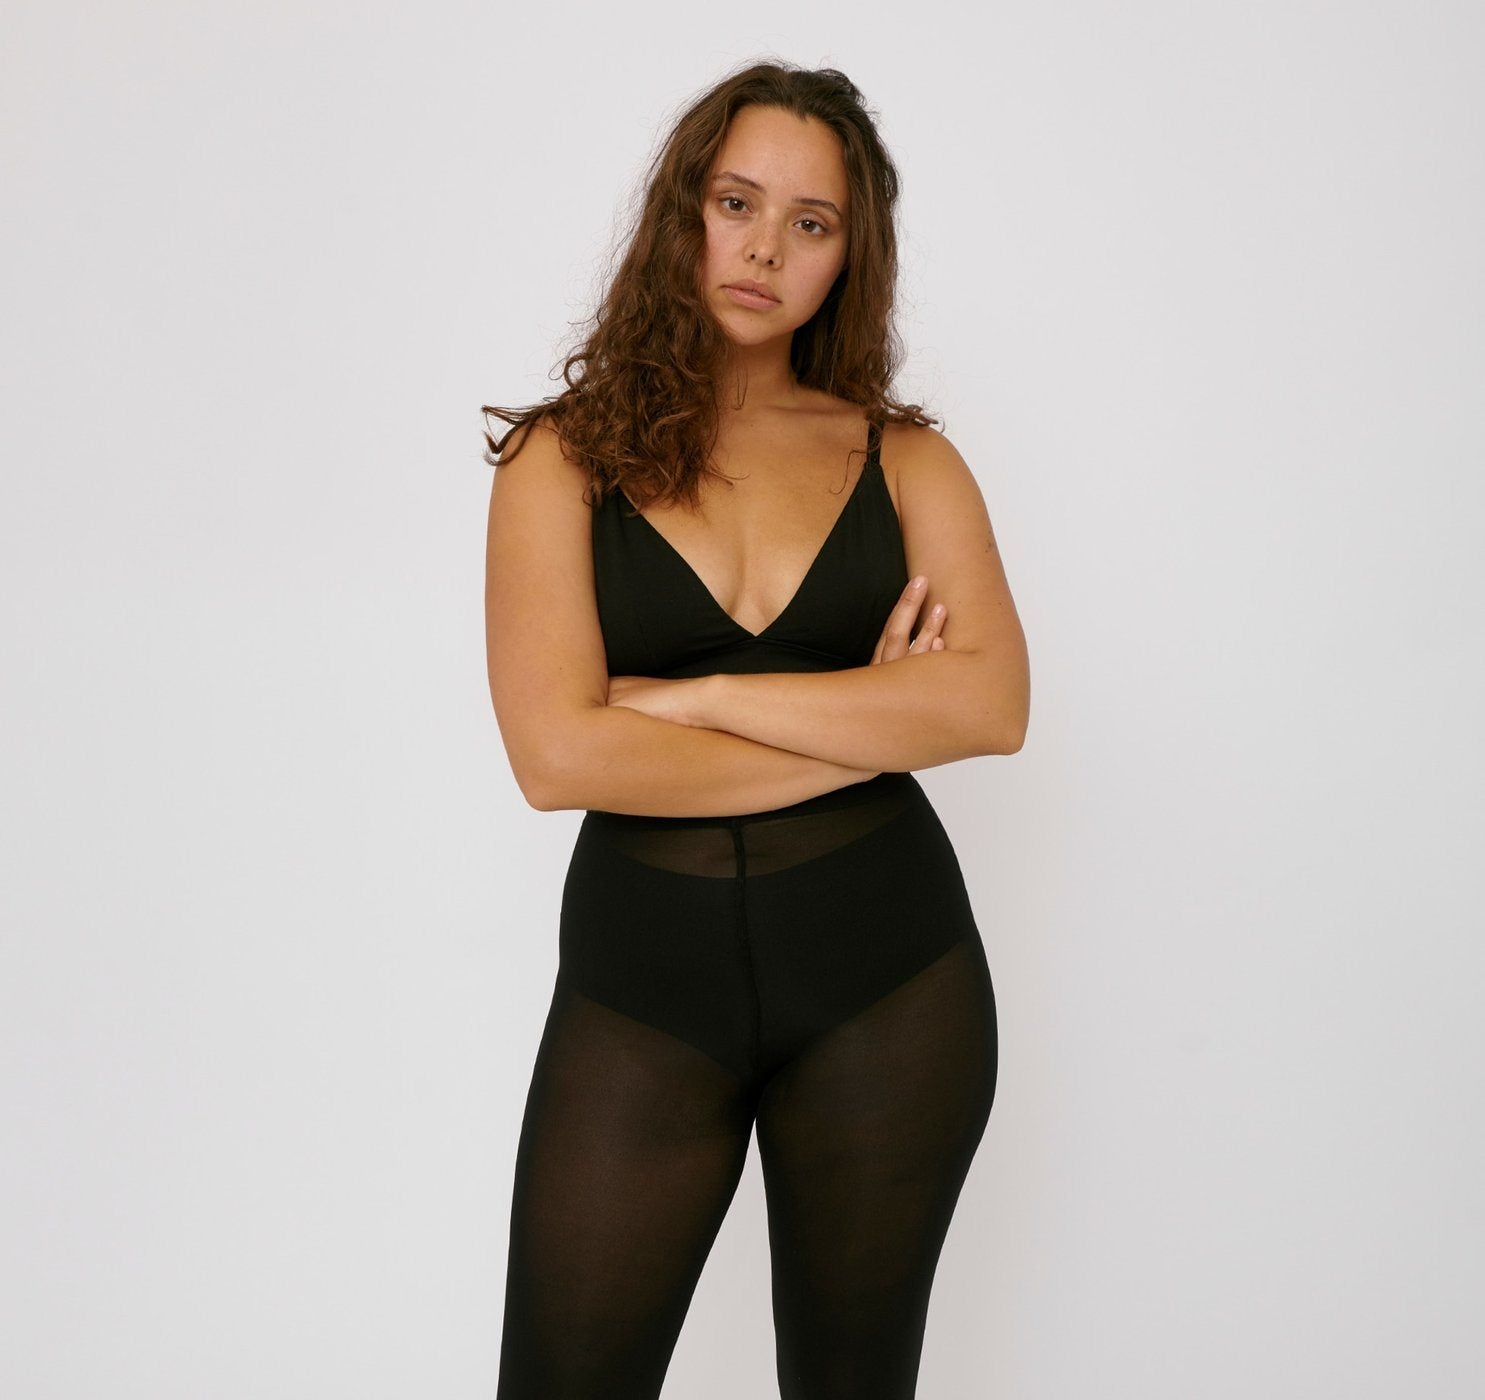 Organic Basics - W's Re-Tights High-Rise 80 Den 2-pack - Recycled Nylon - Weekendbee - sustainable sportswear